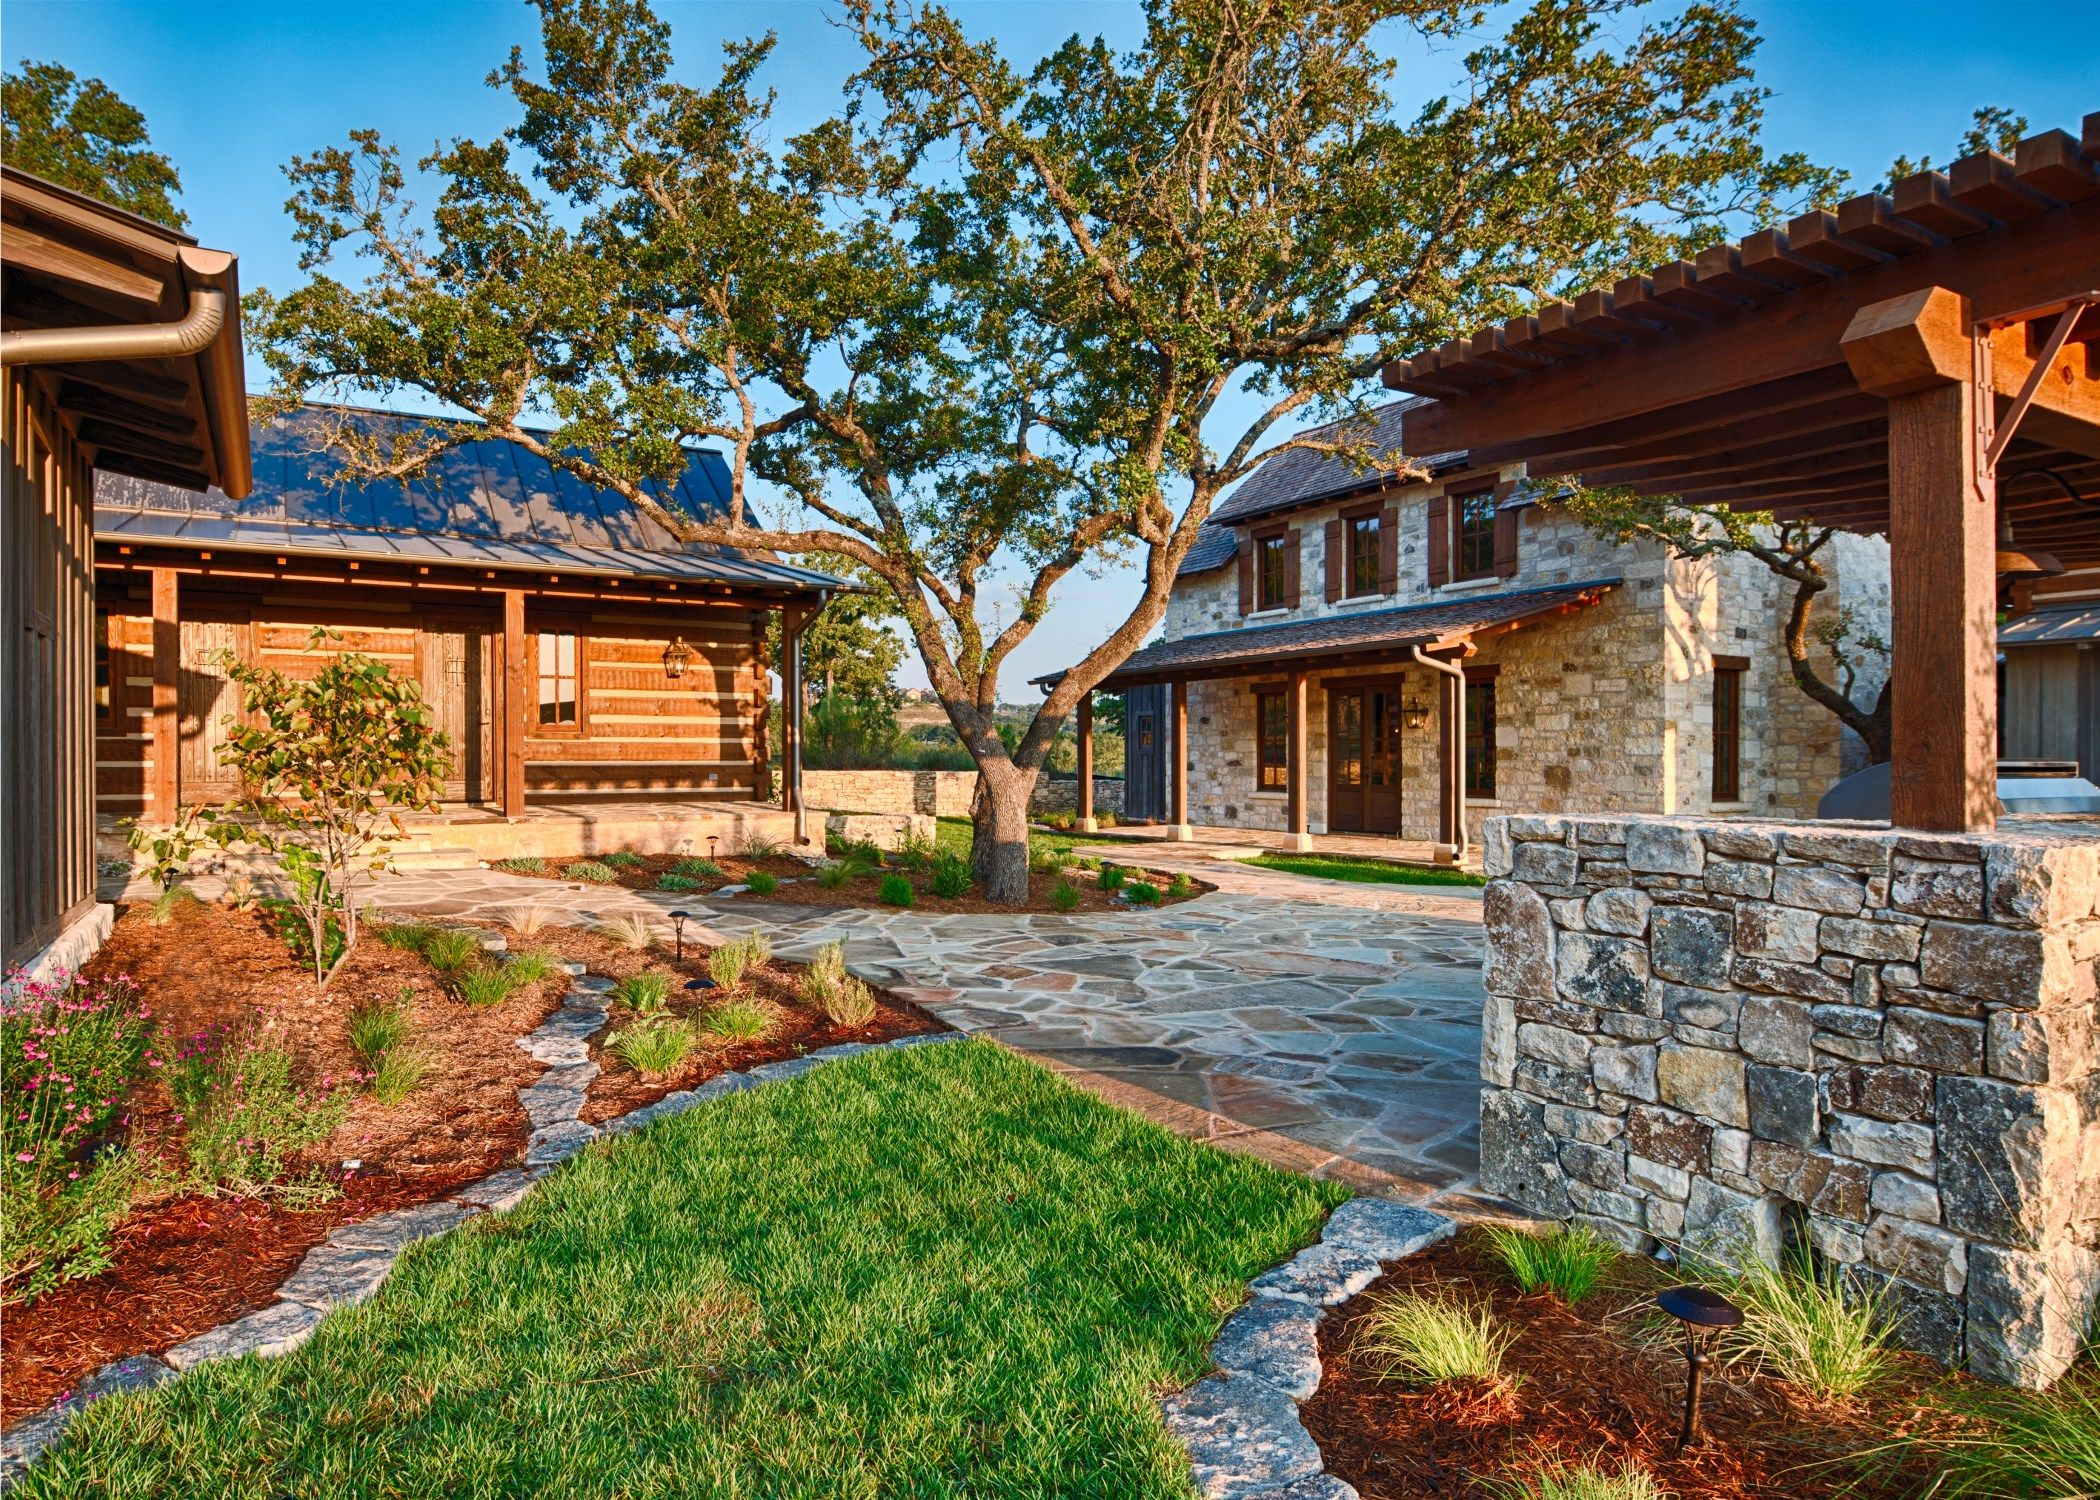 Fredericksburg Texas Hill Country www.BootRanch.com @BootRanch ... for Luxury Country Ranch Homes  588gtk